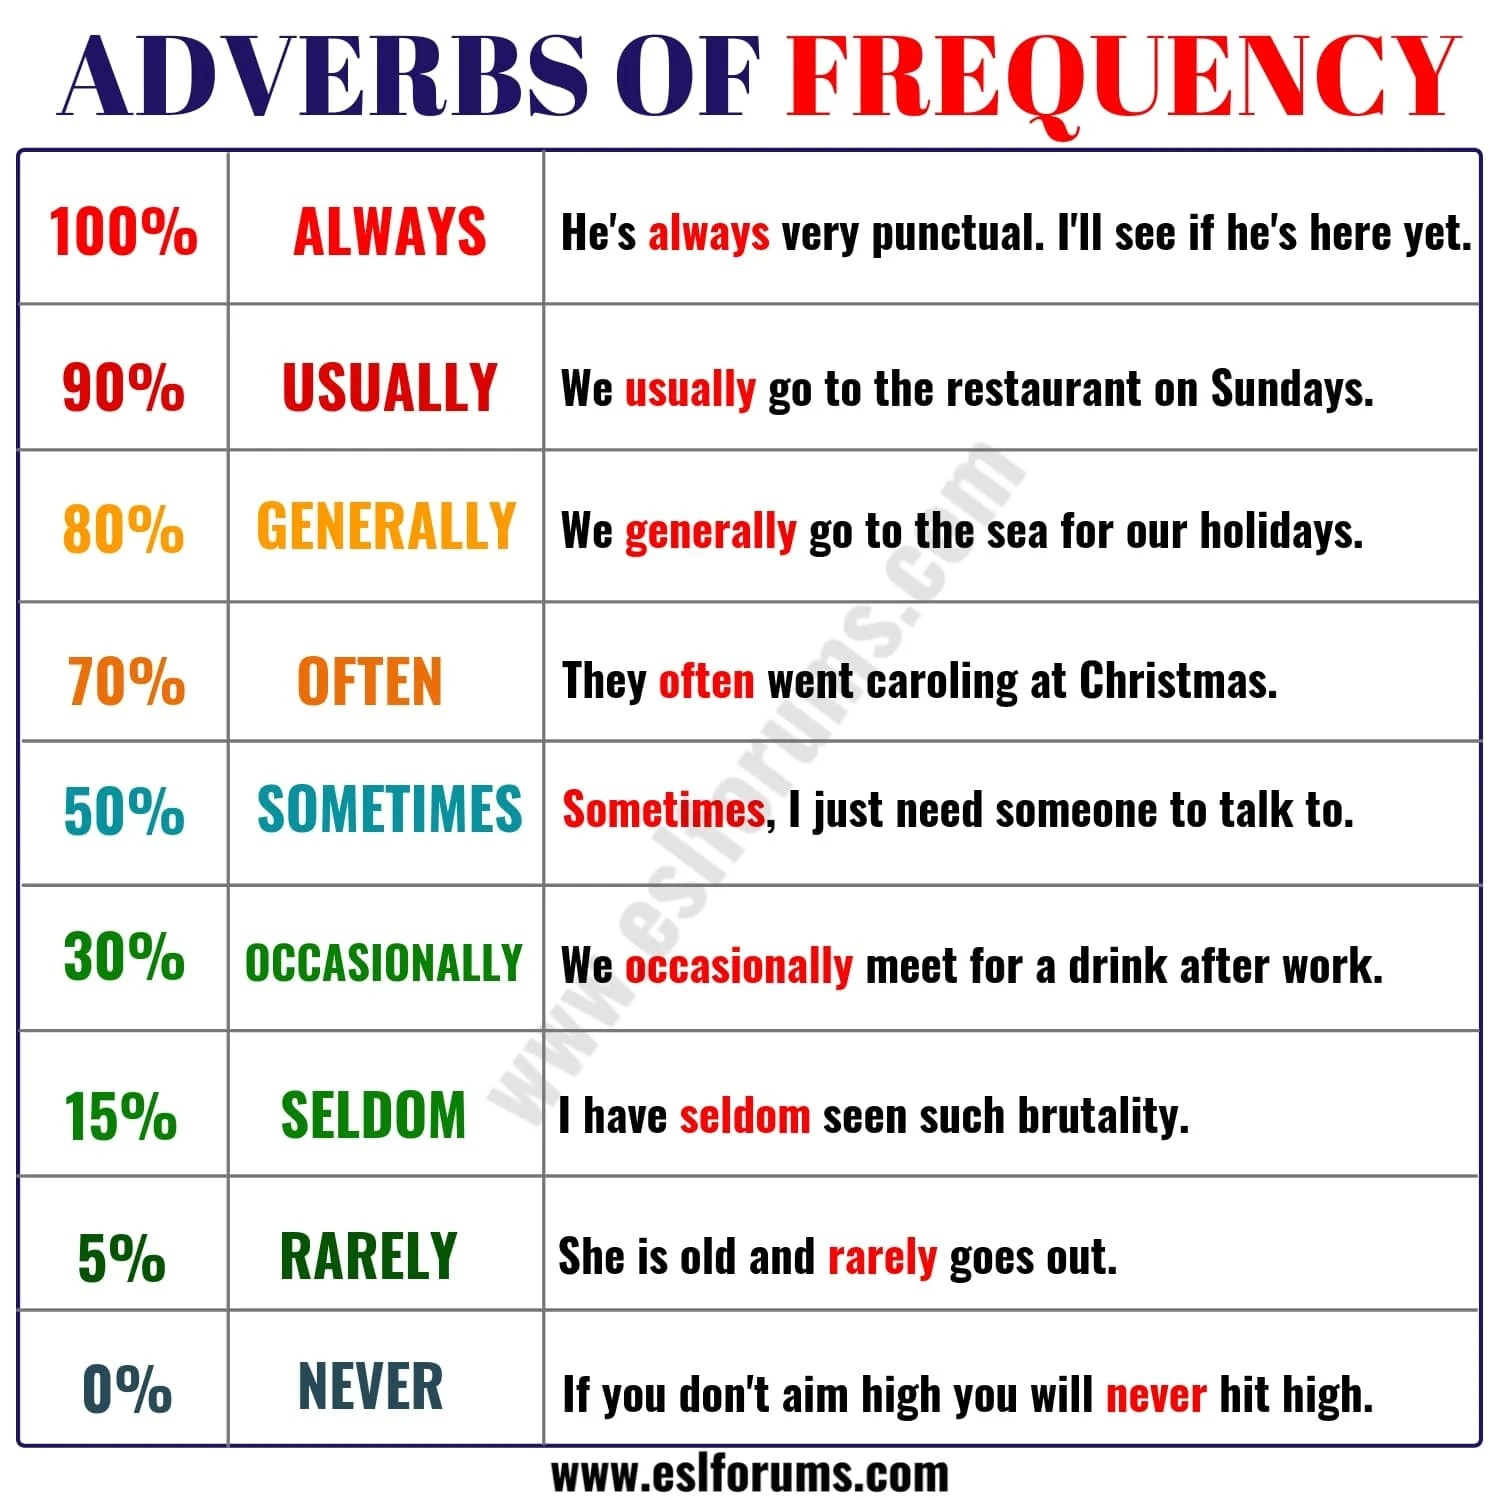 Learn 9 Important Adverbs Of Frequency In English